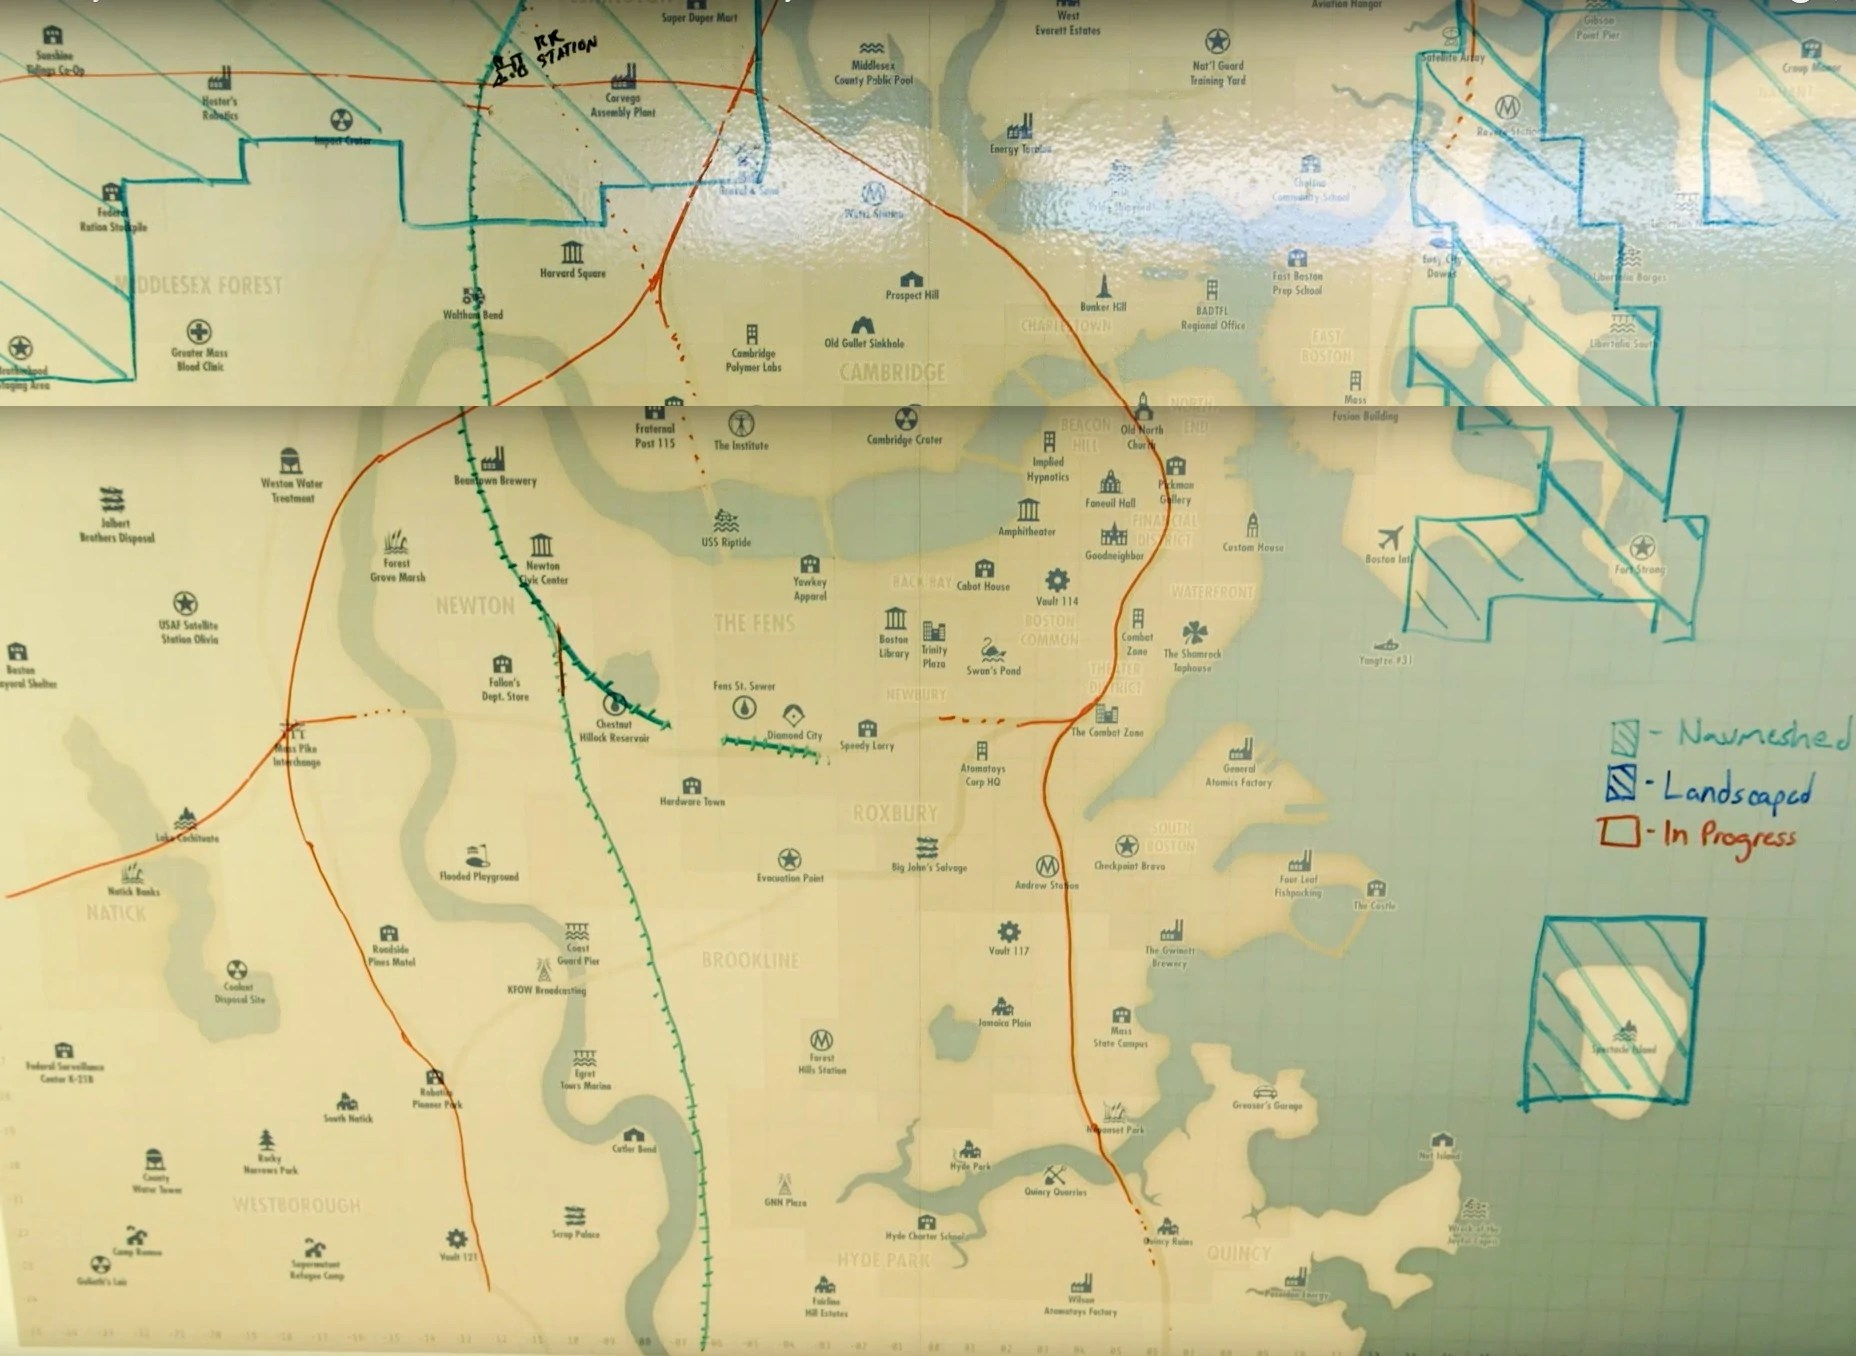 Image   Fallout 4 Concept map  jpg   Fallout Wiki   FANDOM powered     Fallout 4 Concept map  jpg